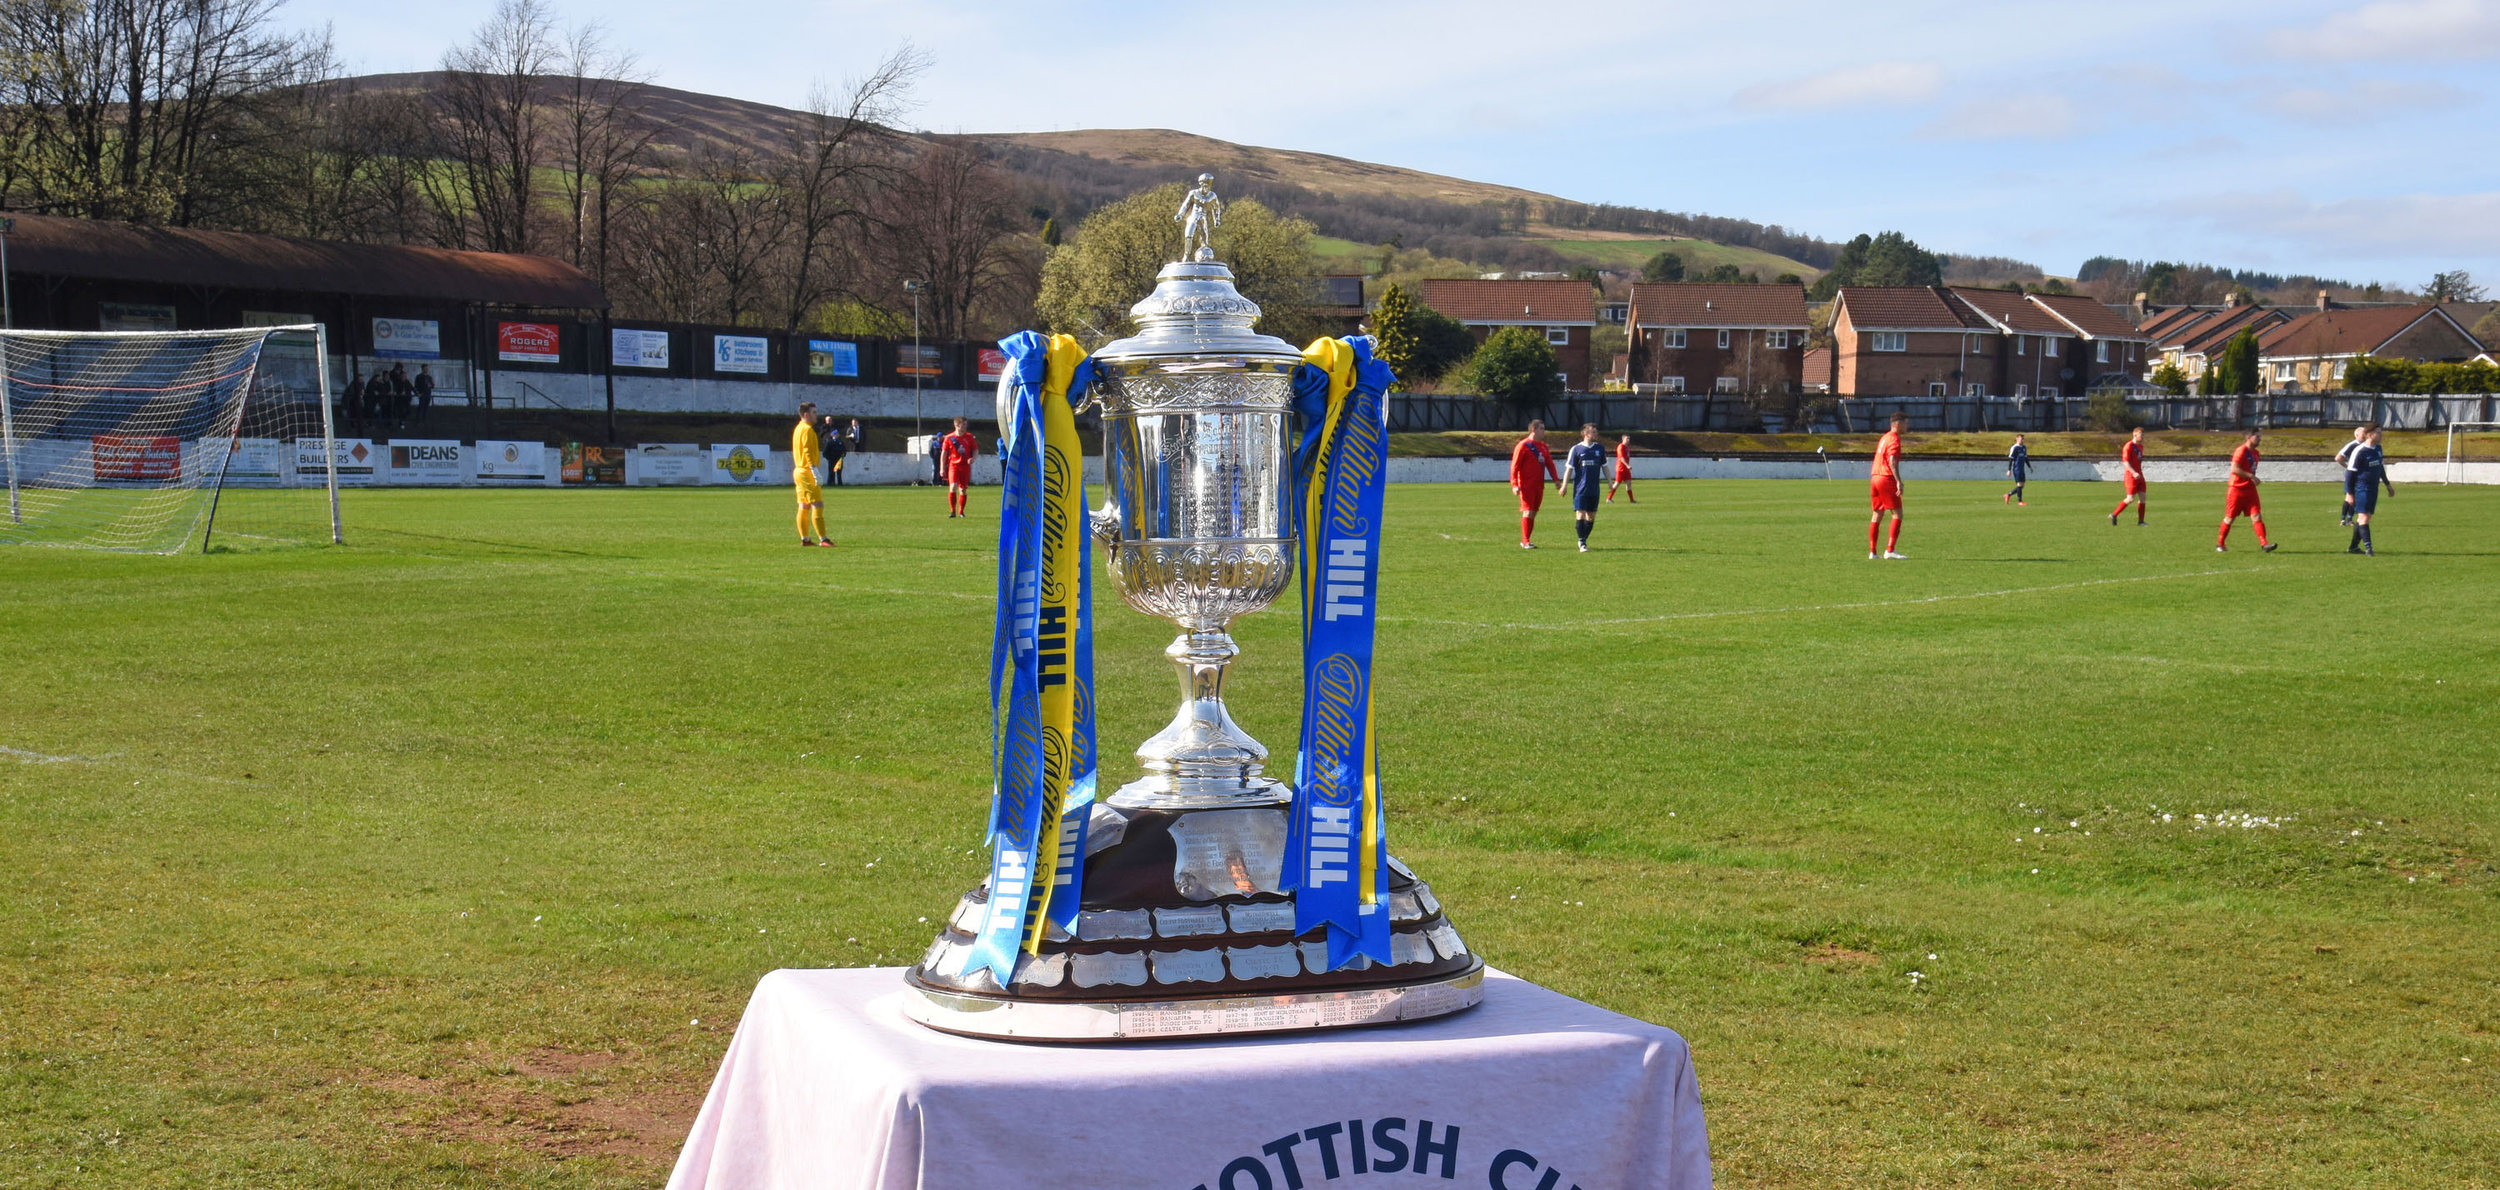 The Scottish Cup returns to Alexandria after a period of 140 years